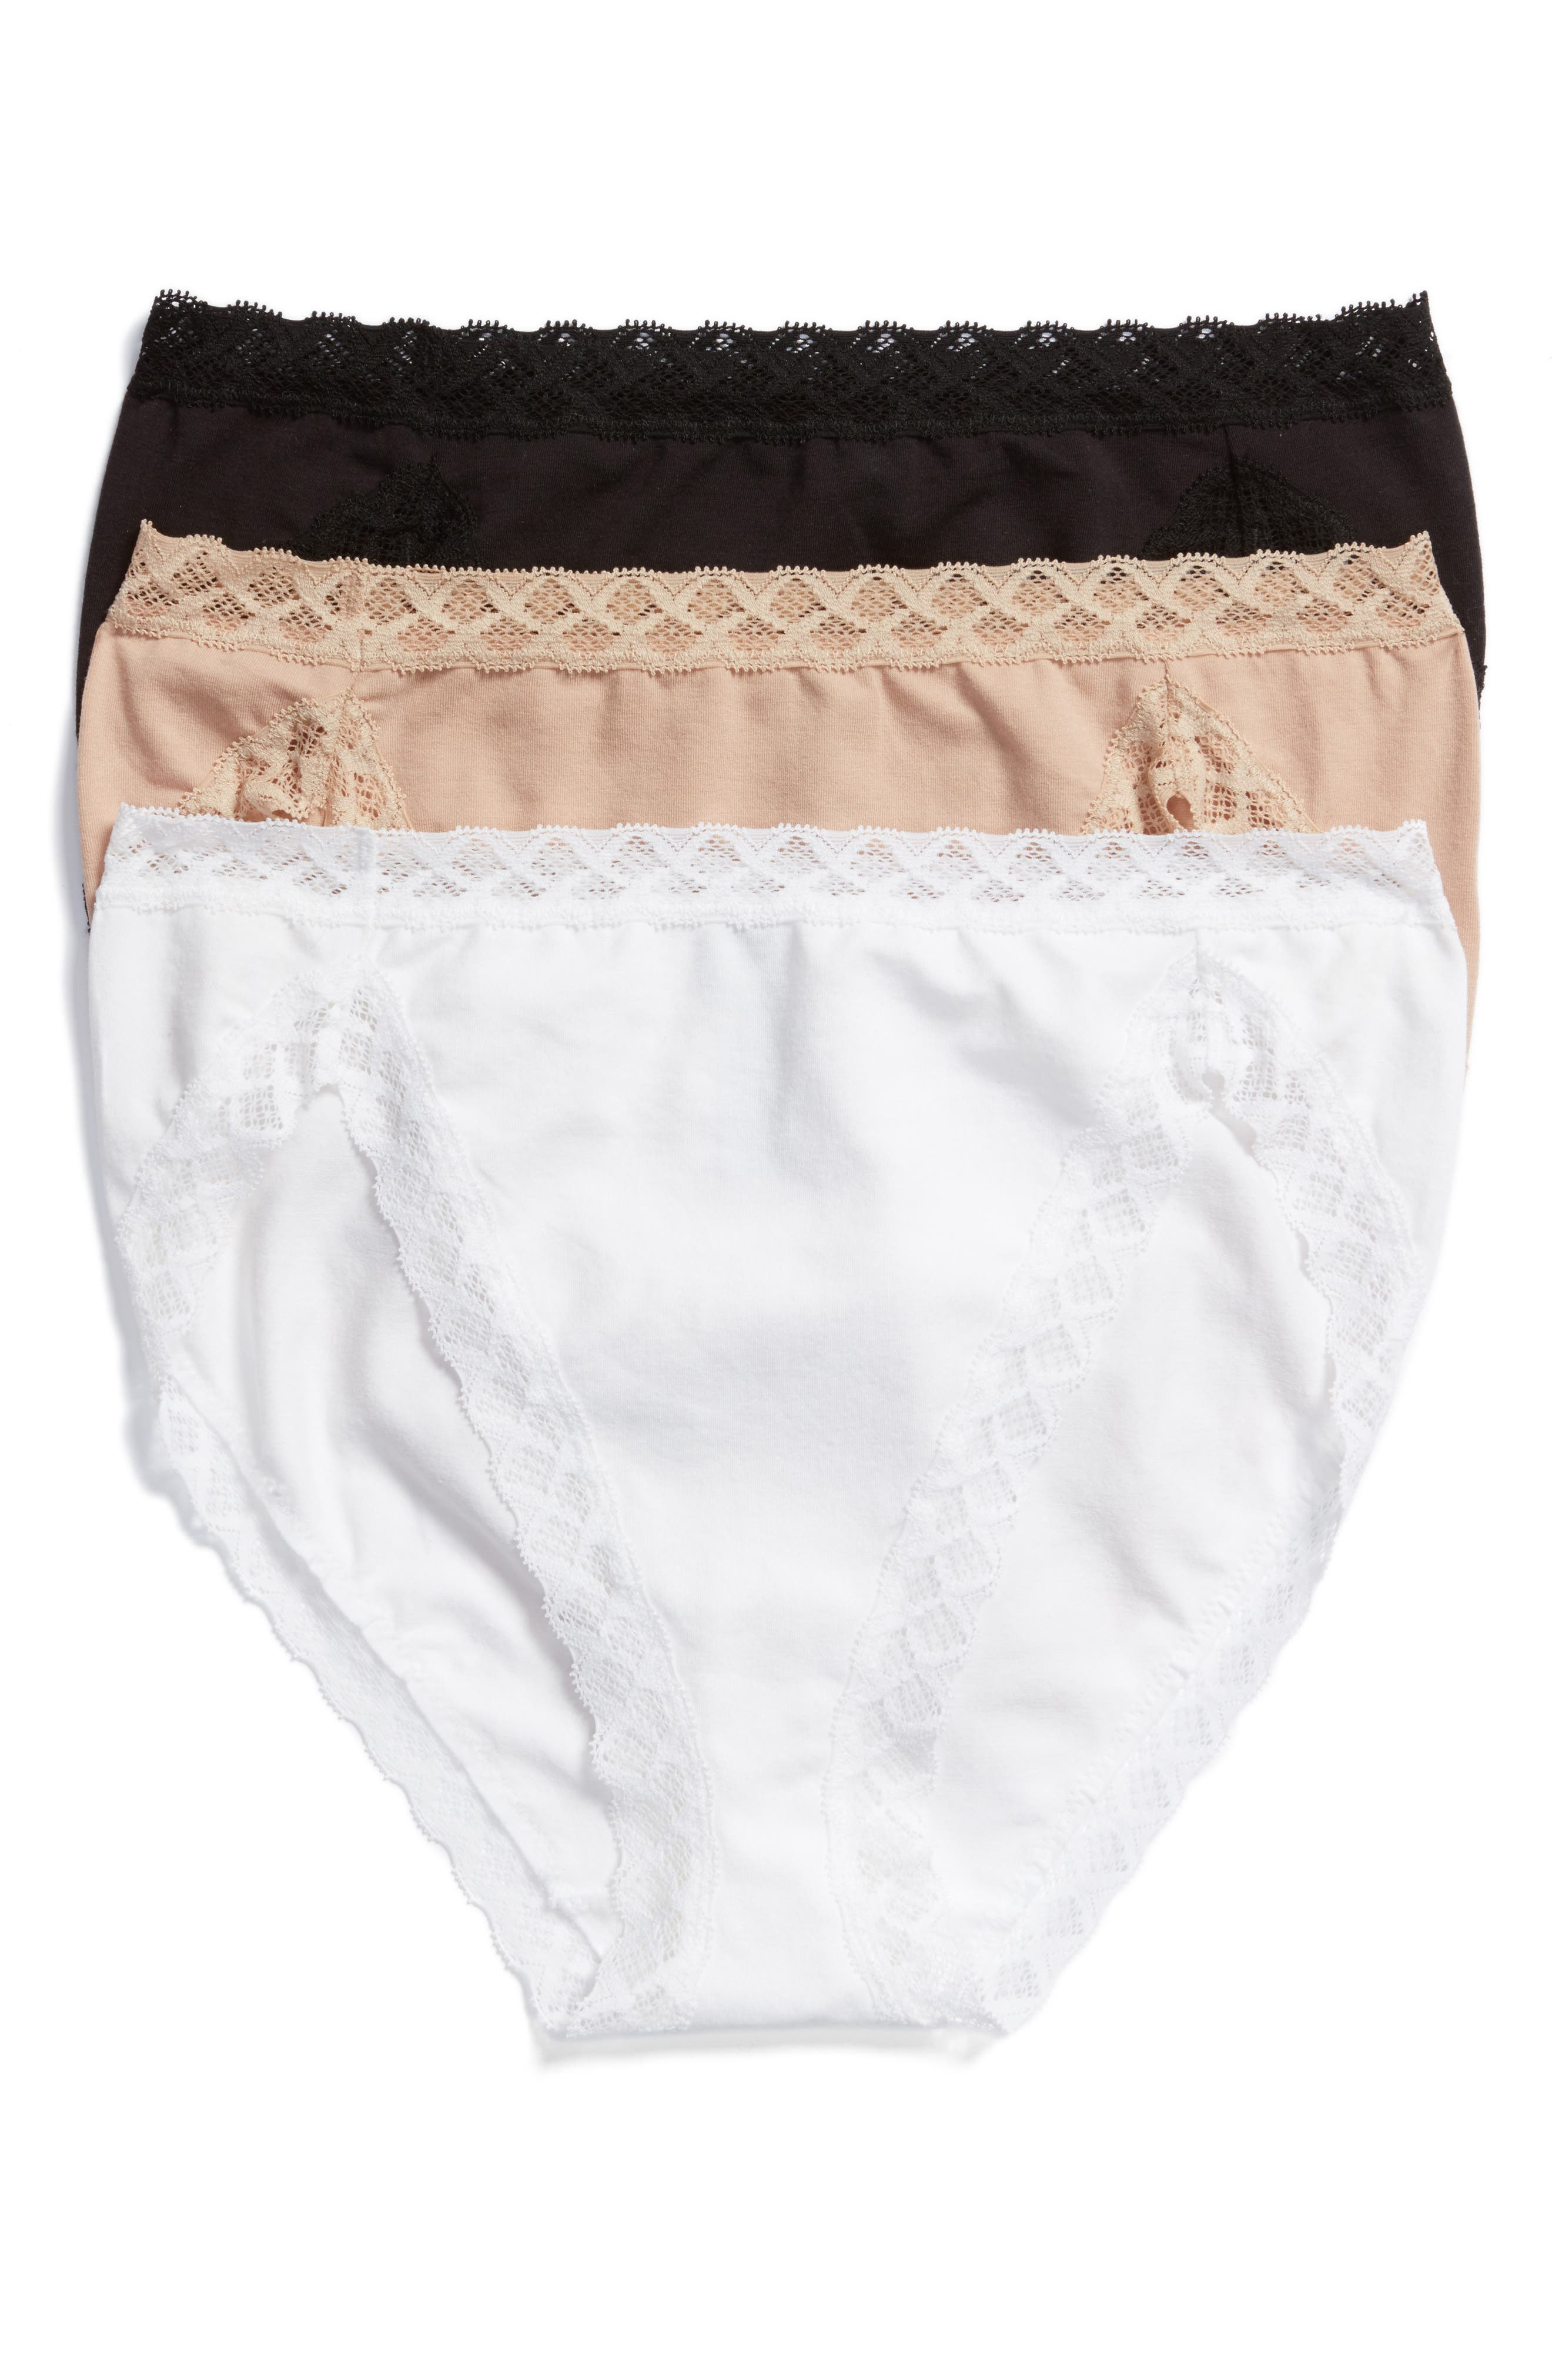 'Bliss' French Cut Briefs,                         Main,                         color, BLACK/ CAFE